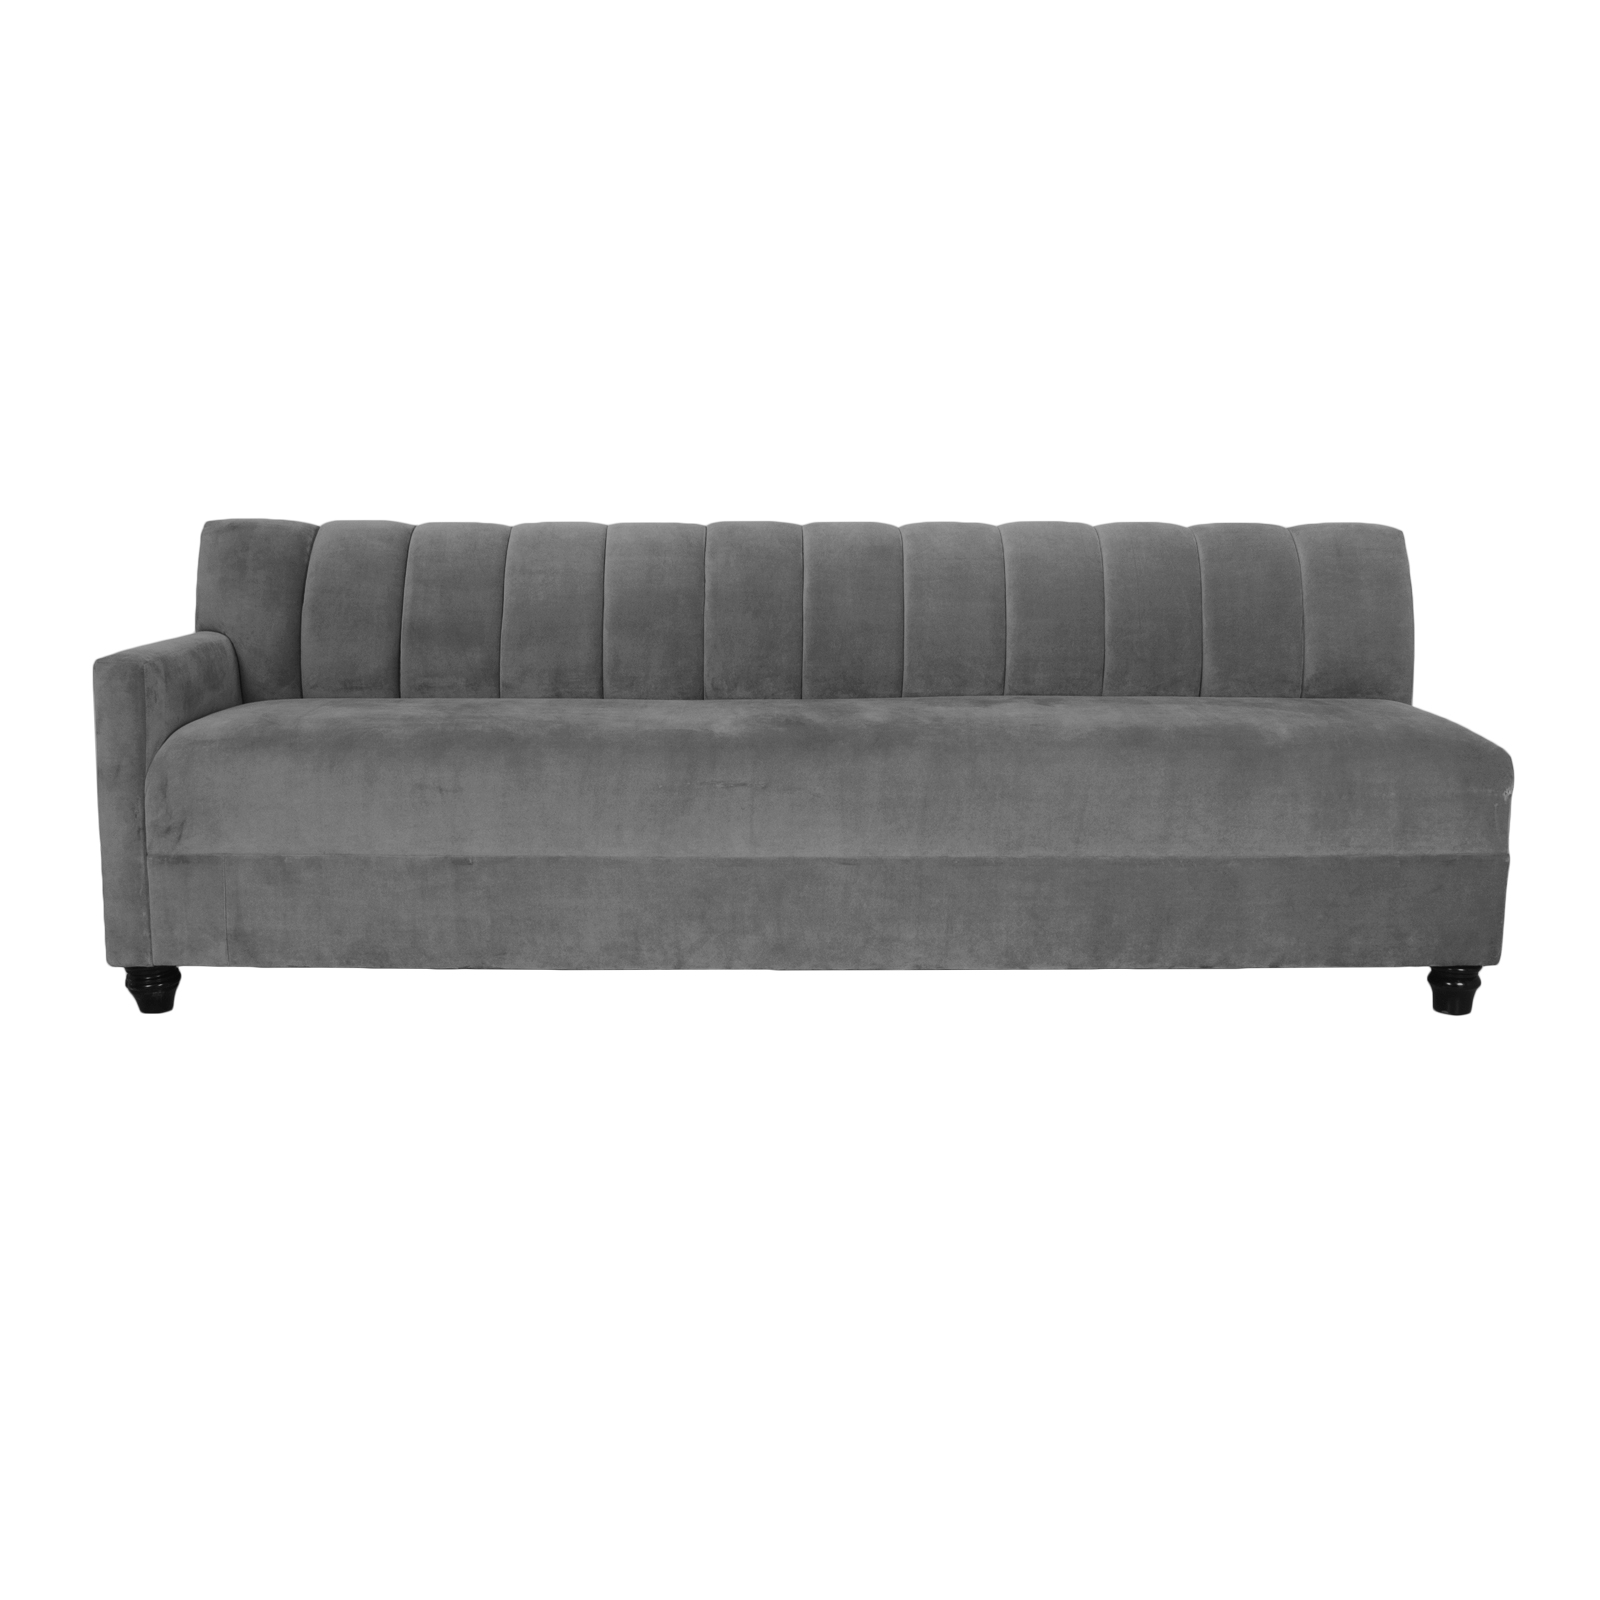 rental sofa custom slipcovers for camelback event rentals party furniture delivery